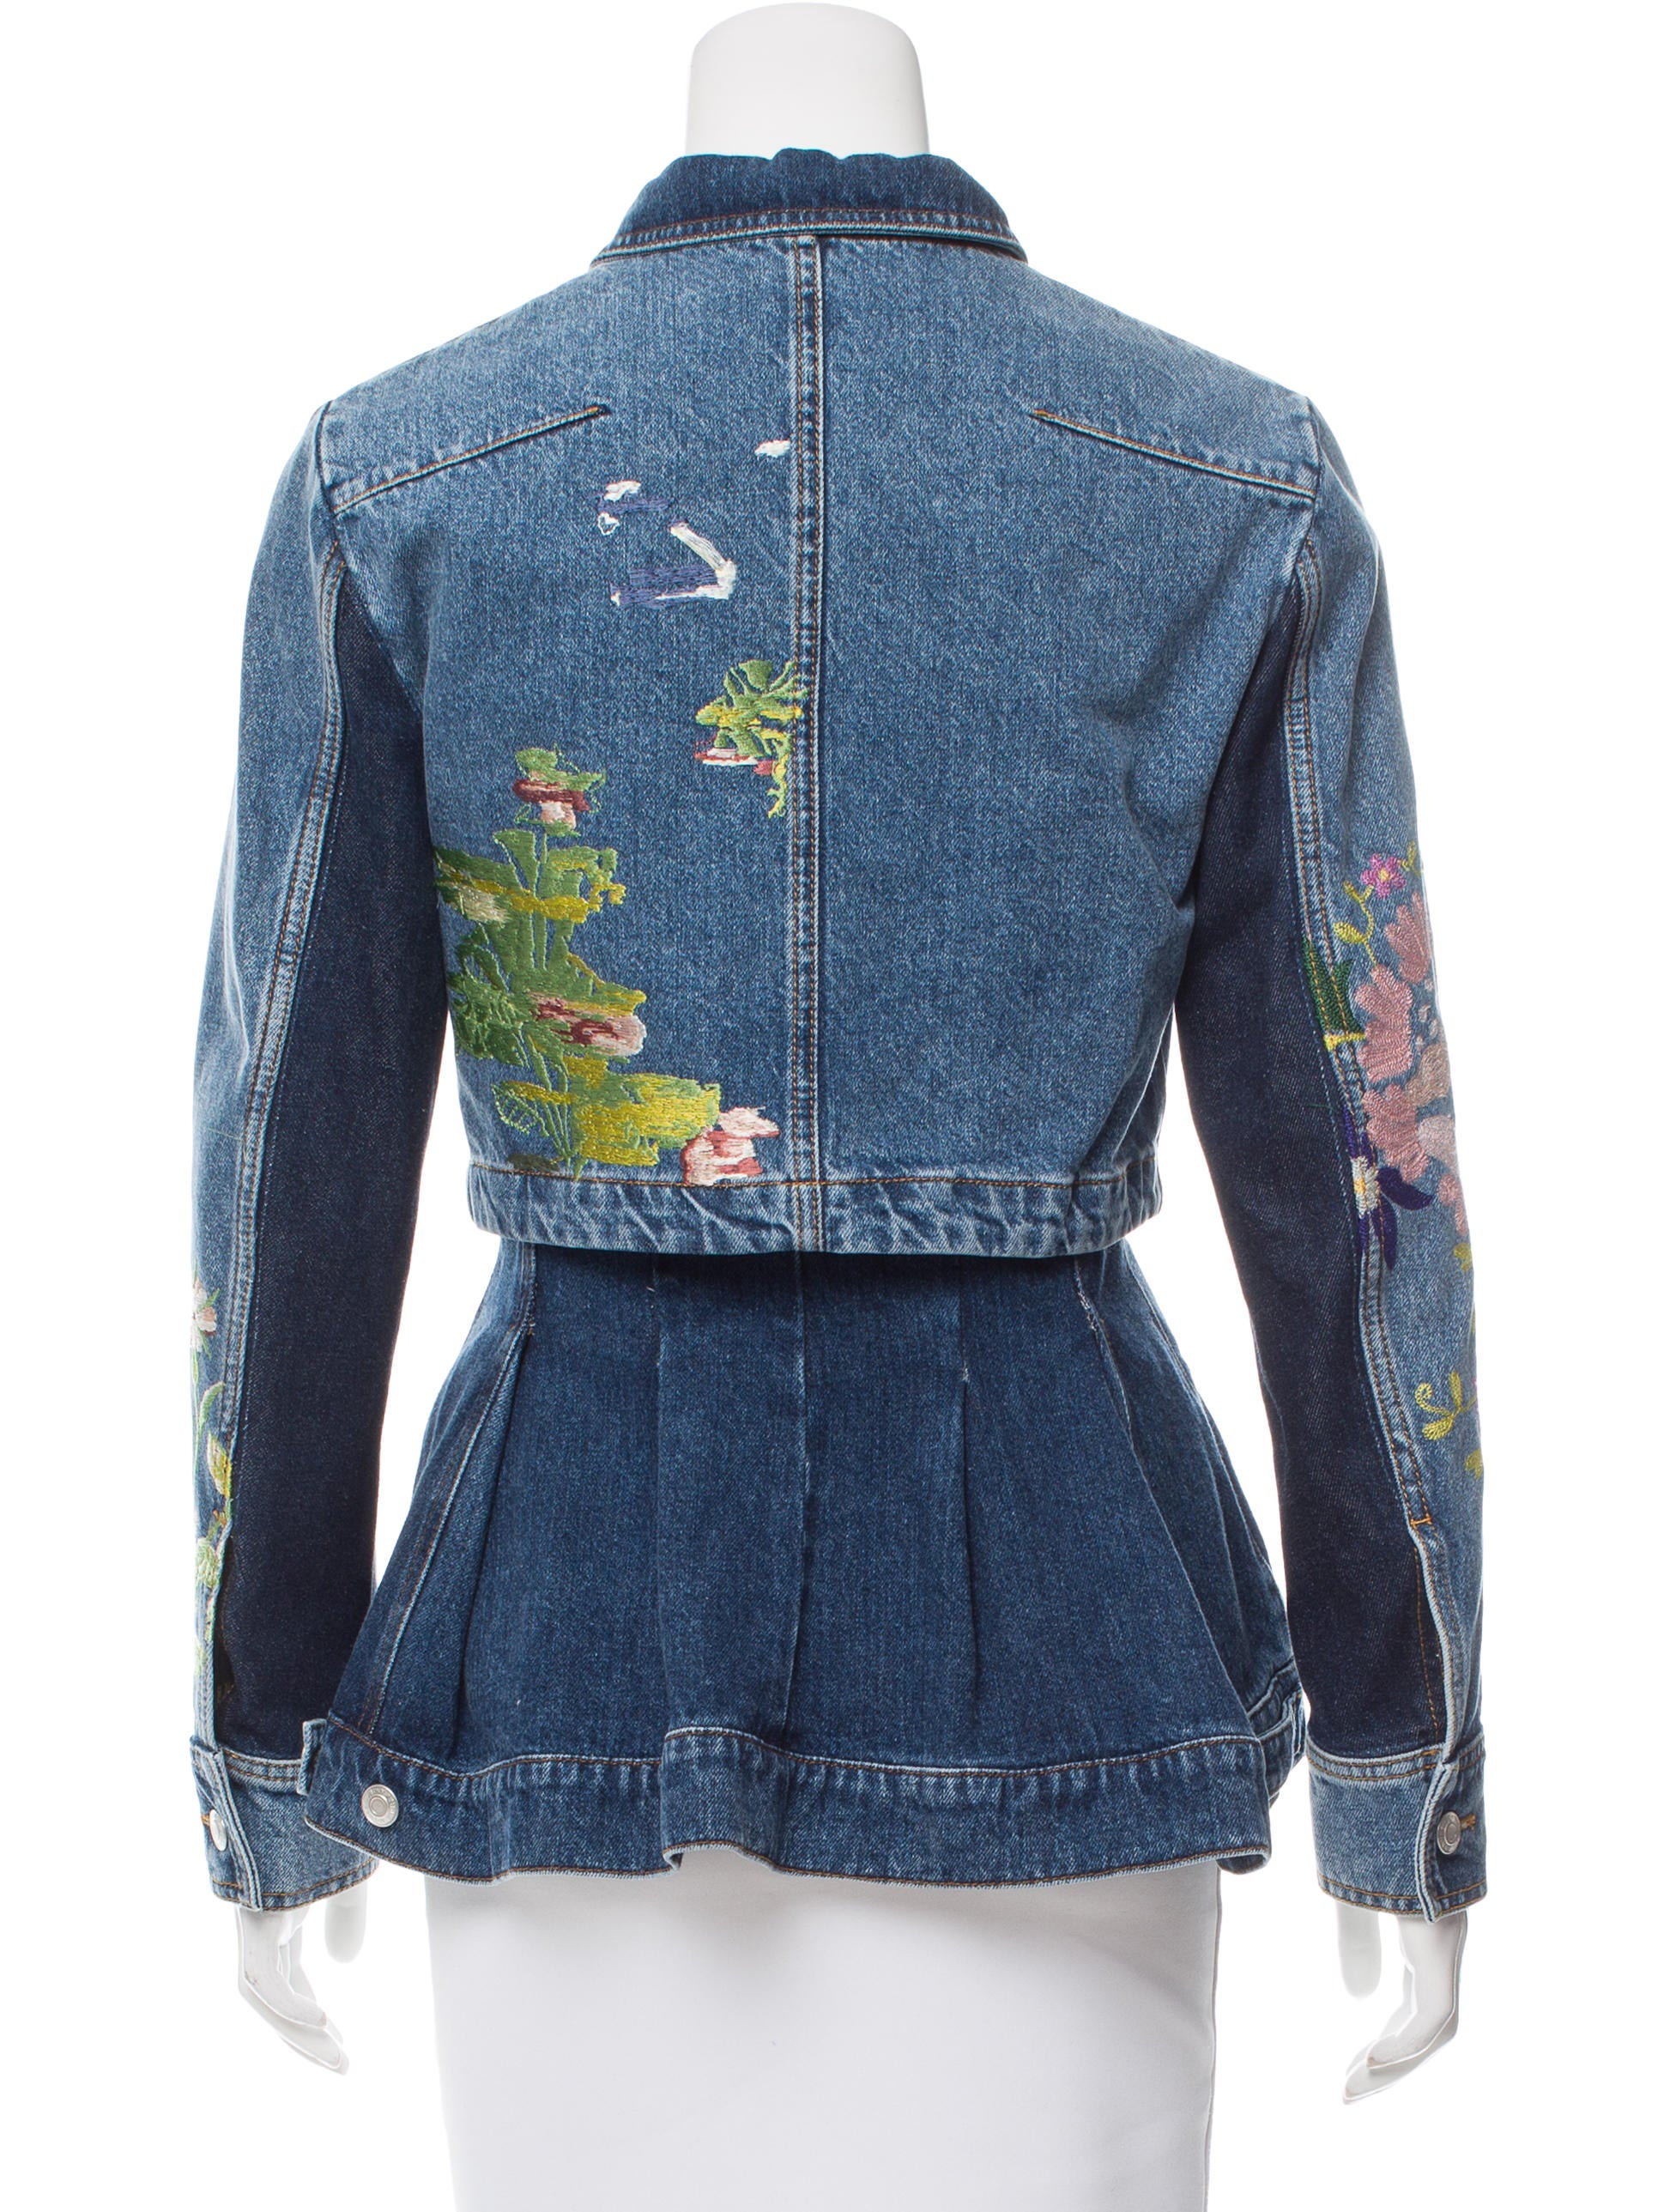 Alexander McQueen Embroidered Denim Jacket - Clothing - ALE41024 | The RealReal